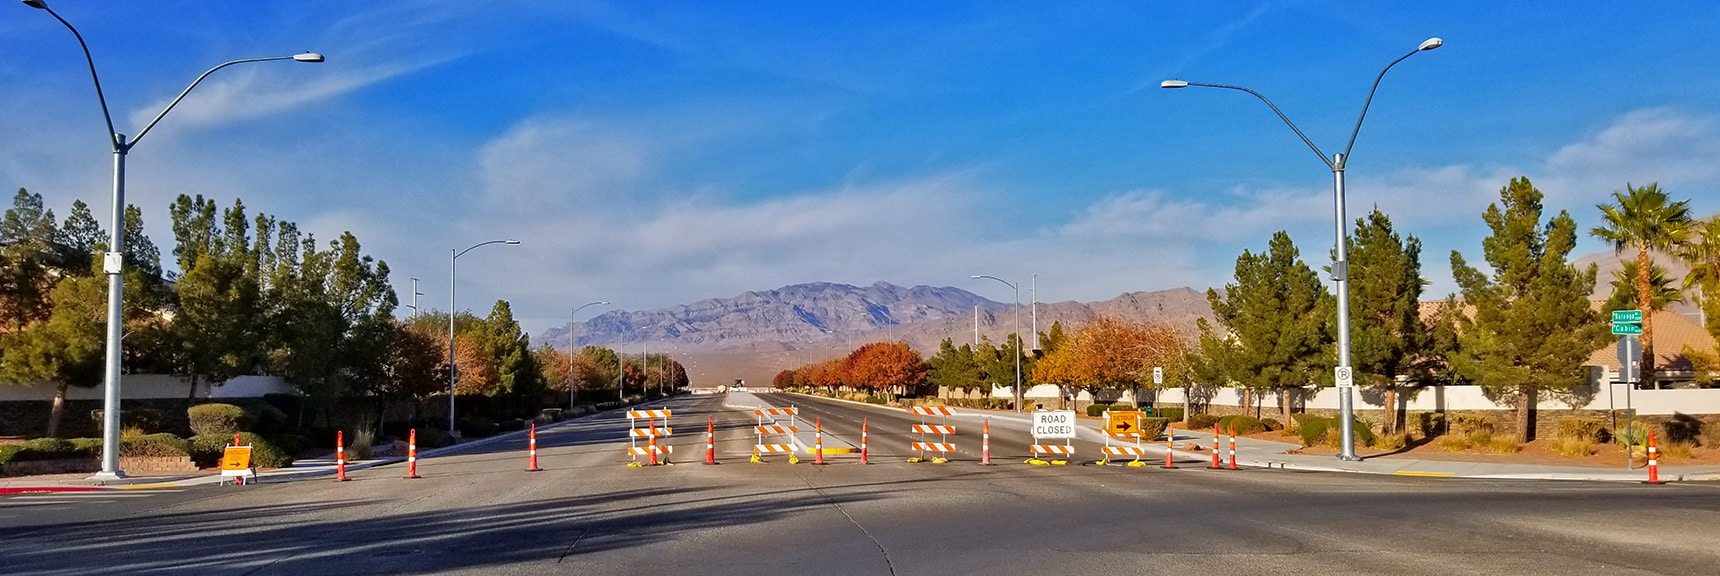 Blocked Off Northern Section of Durango, Construction Begins | Snapshot of Las Vegas Northern Growth Edge on January 3, 2021